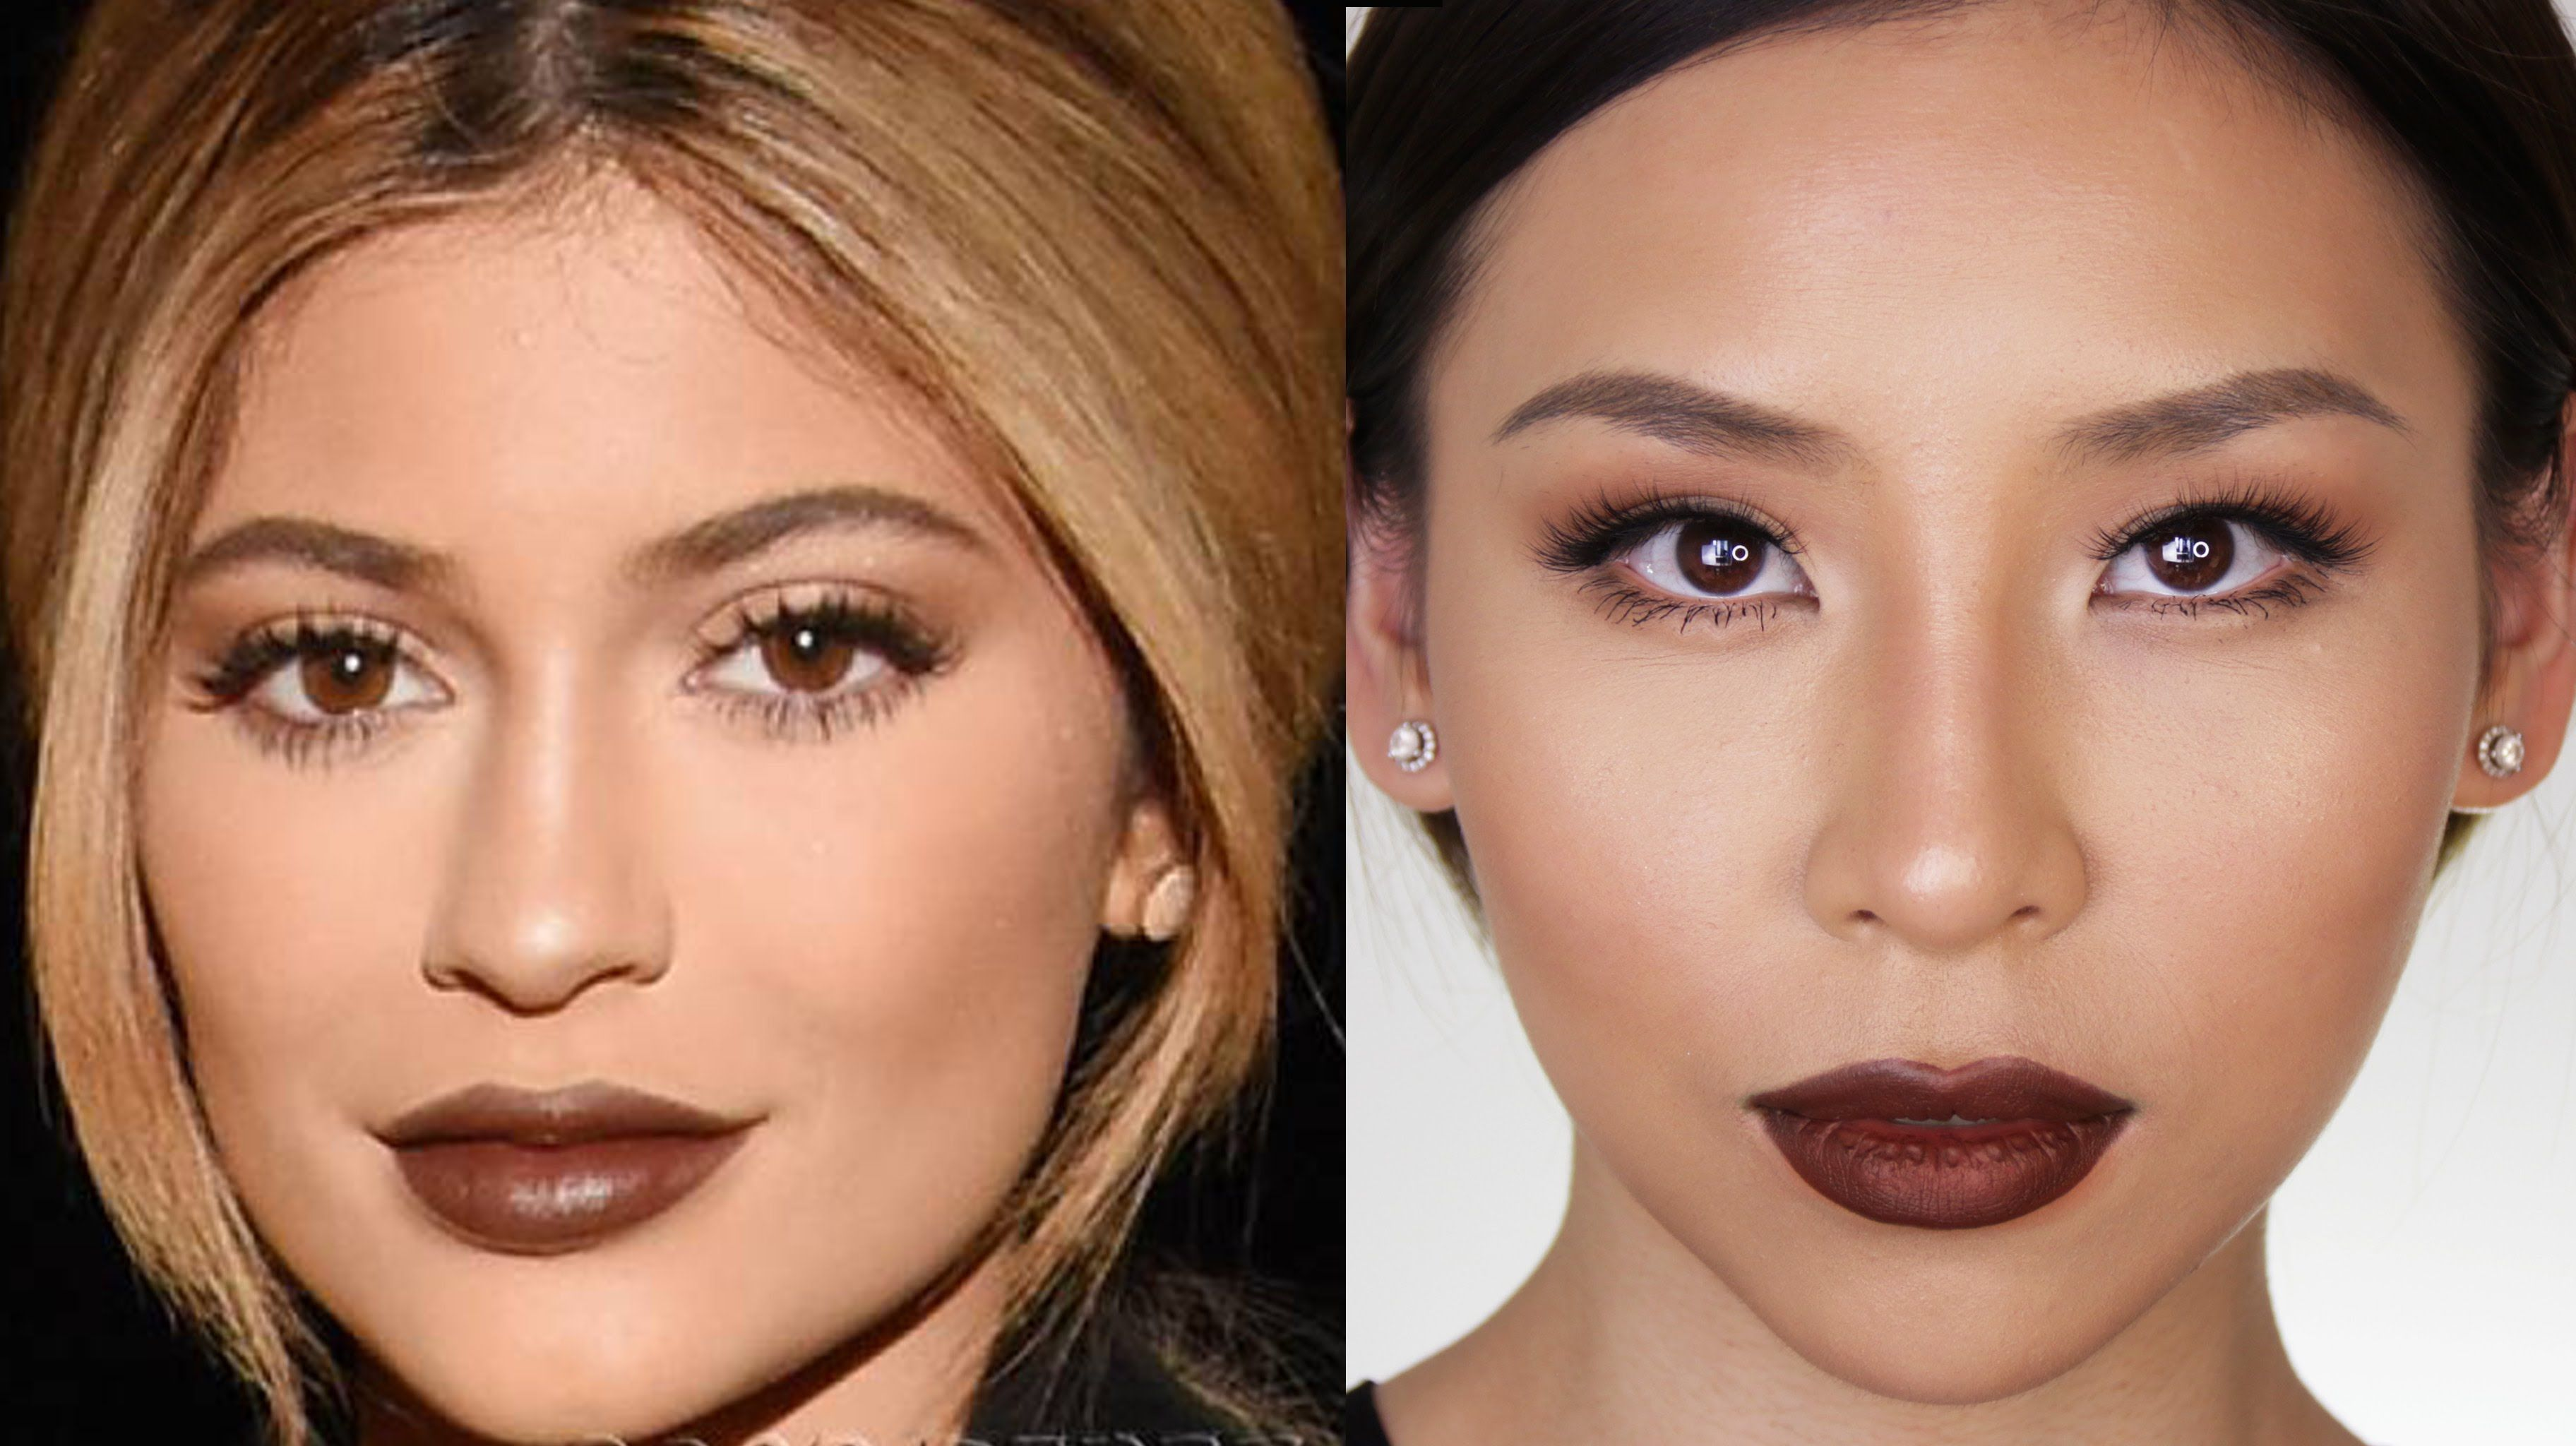 This tutorial is will show you how to recreate Kylieus fall makeup